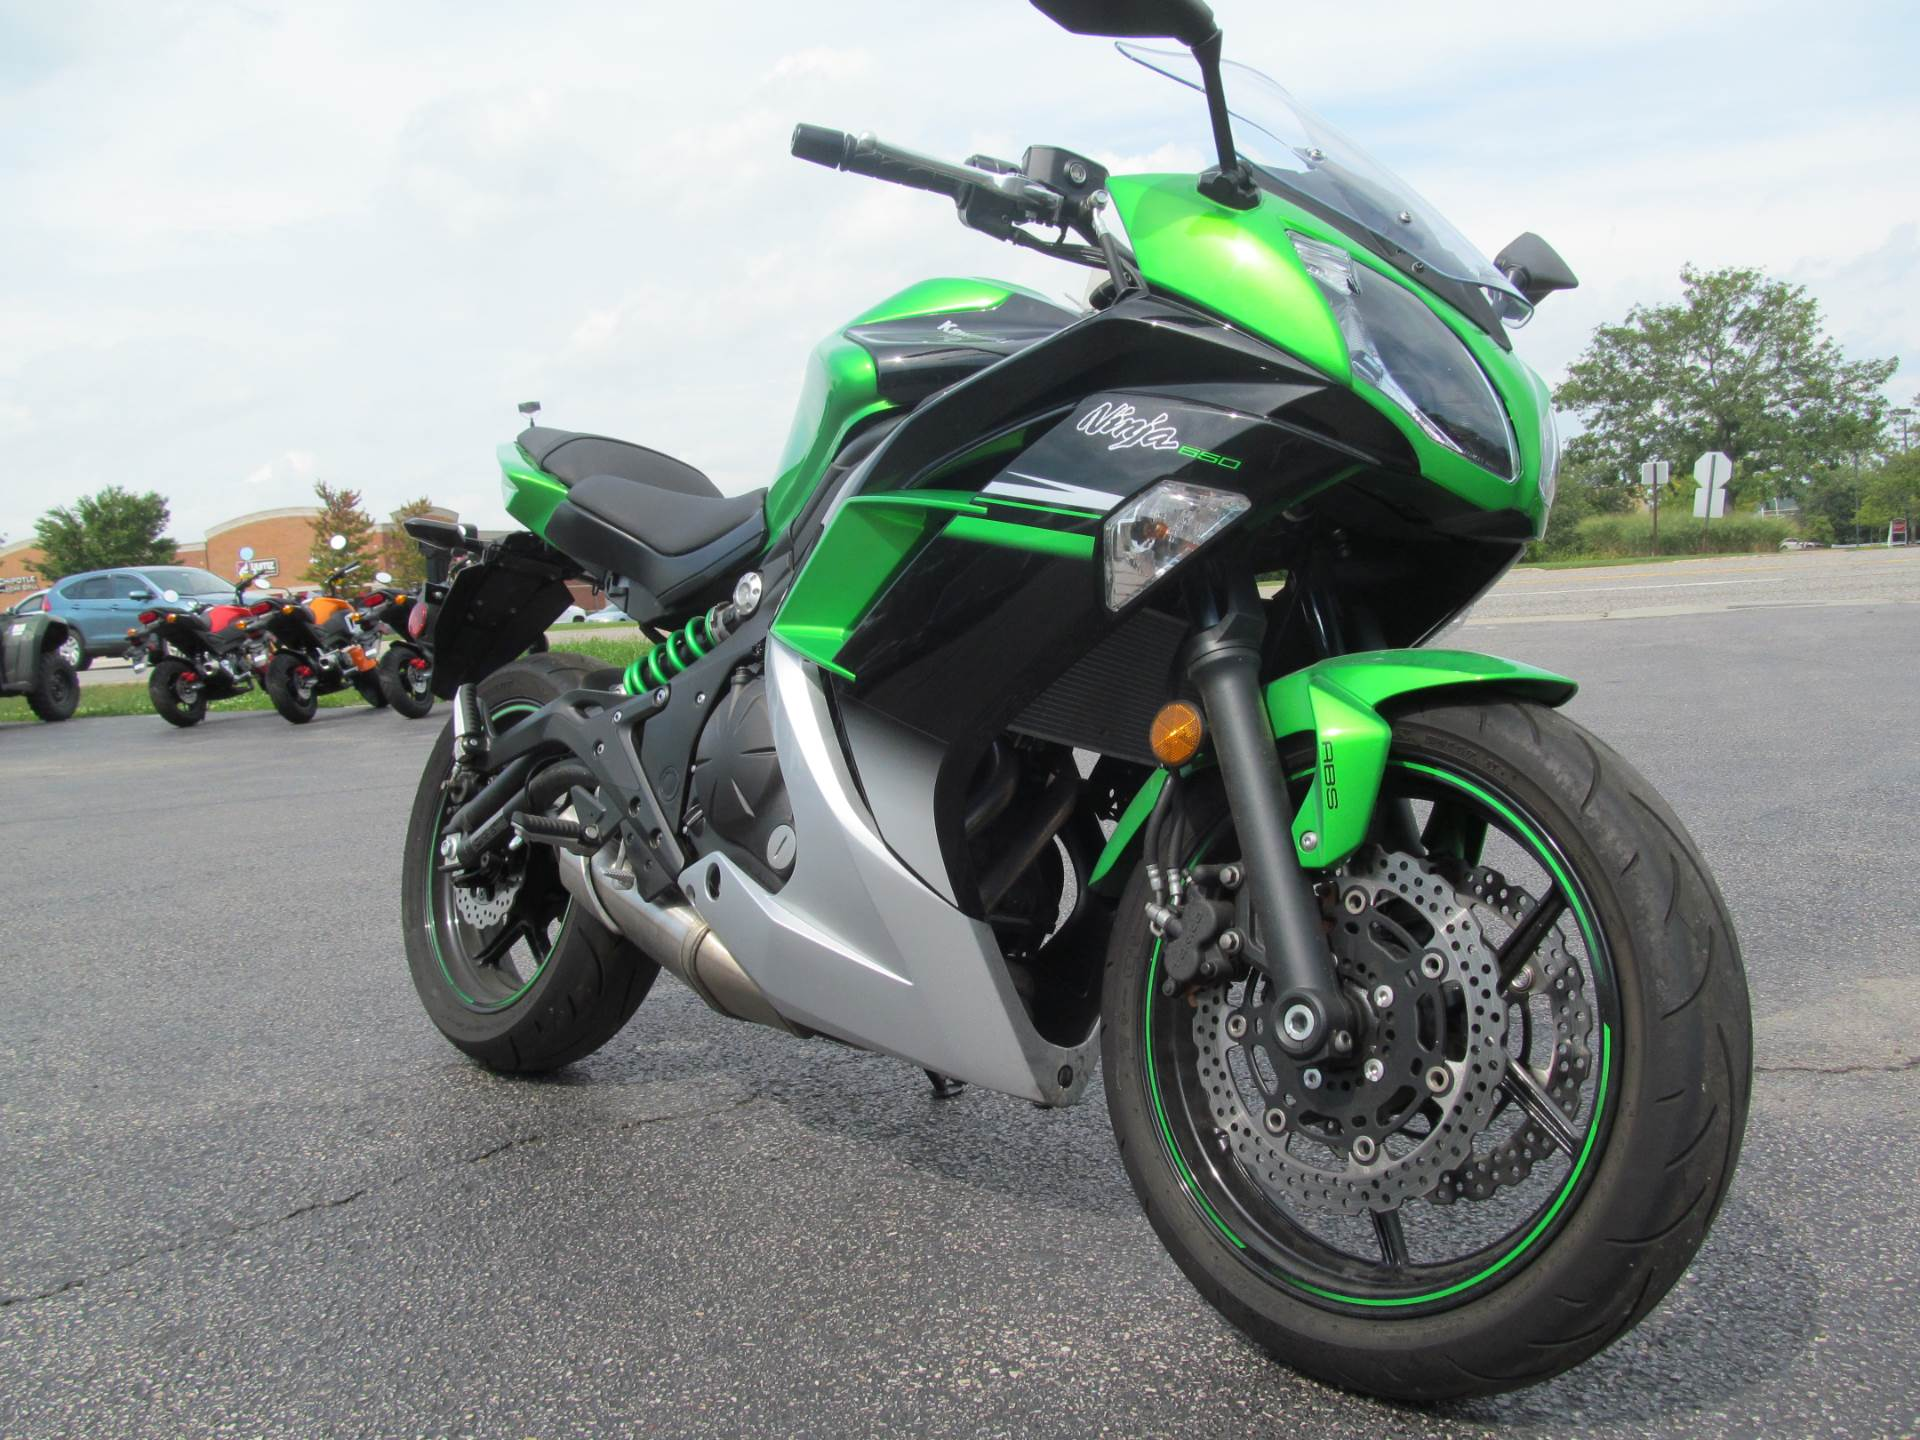 2016 Kawasaki Ninja 650 ABS in Crystal Lake, Illinois - Photo 3